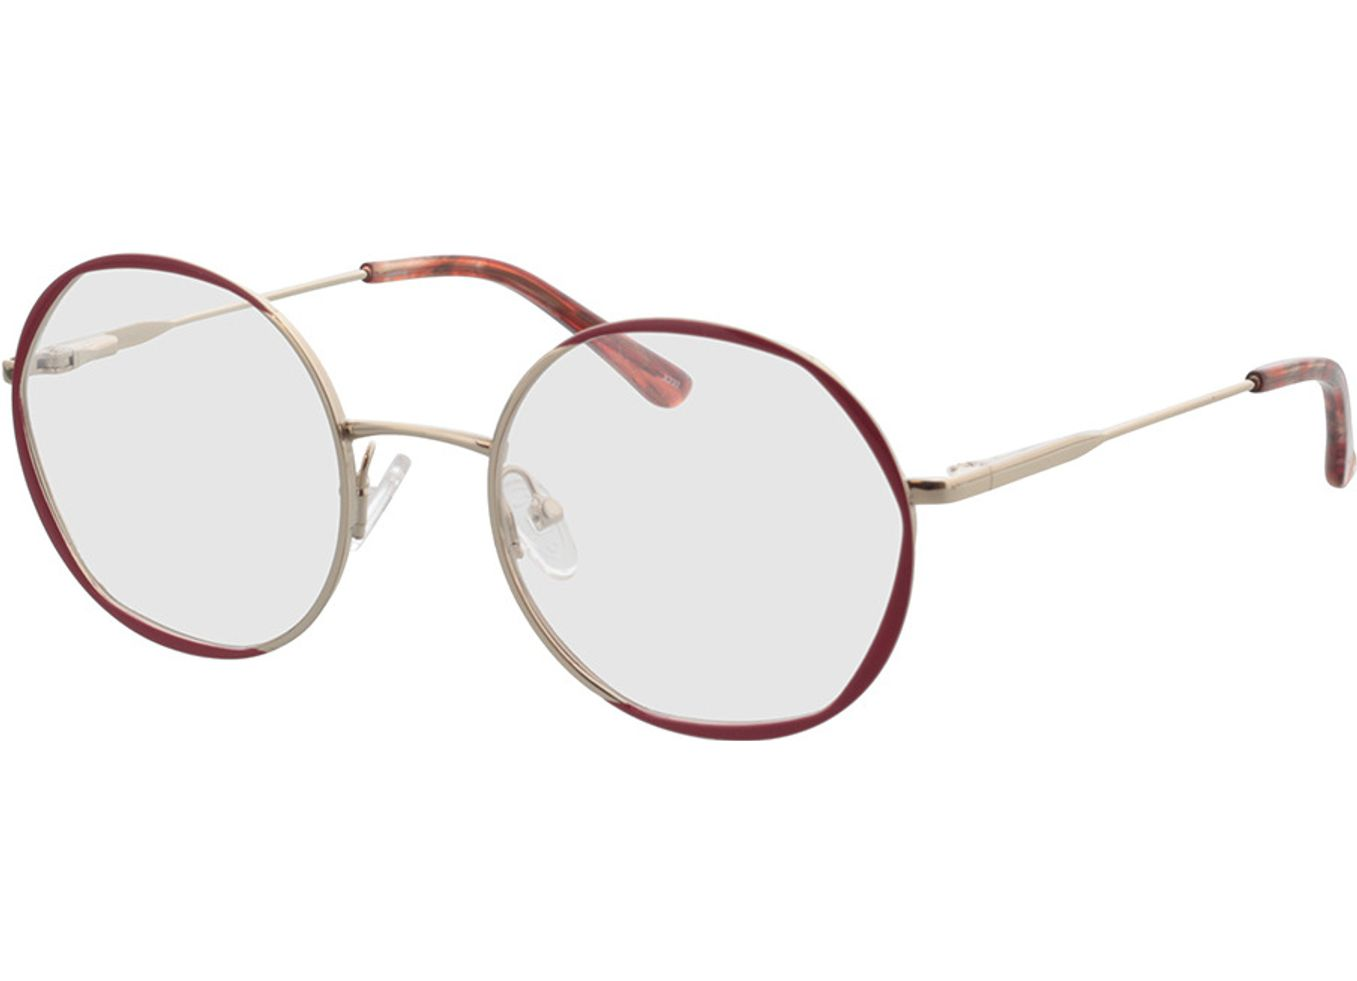 4250325296442-singlevision-0000 Selma-gold/rot Gleitsichtbrille, Vollrand, Rund Brille24 Collection